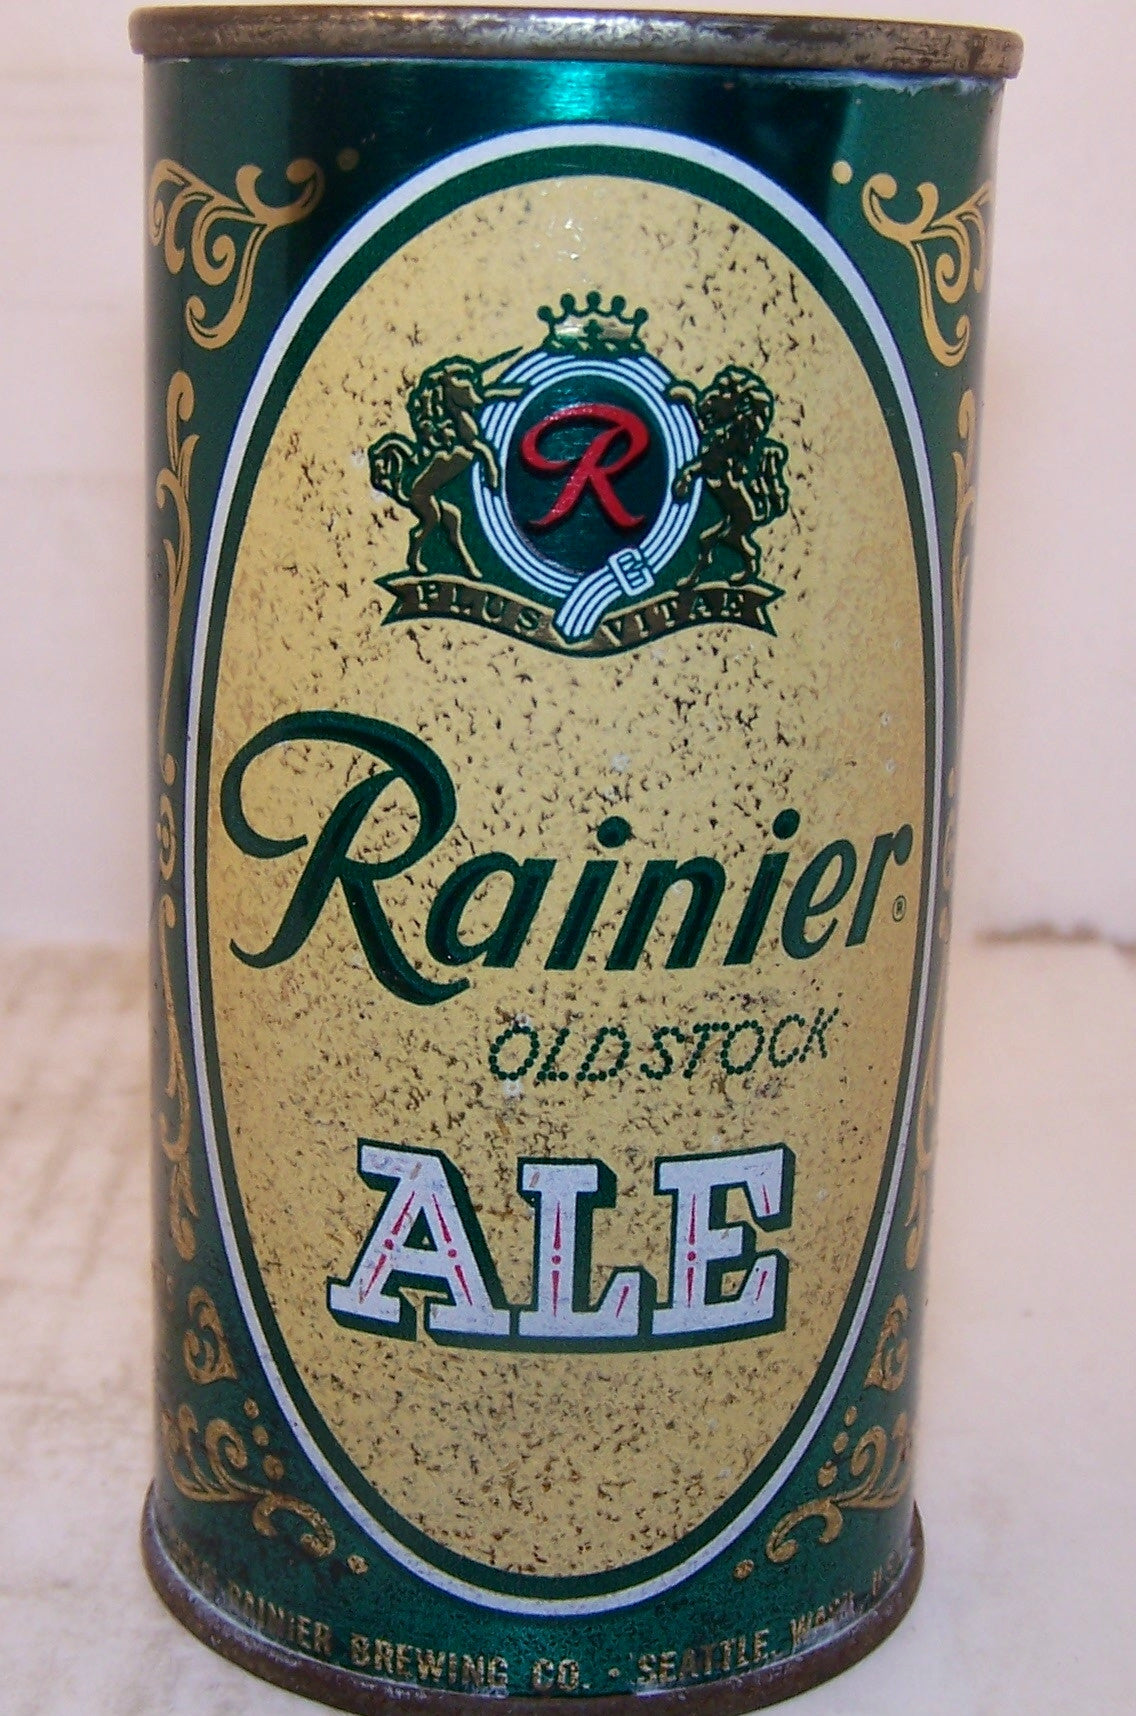 Rainier Old Stock Ale 11 ounce, USBC 118-6, Grade 1- Sold 4/19/15